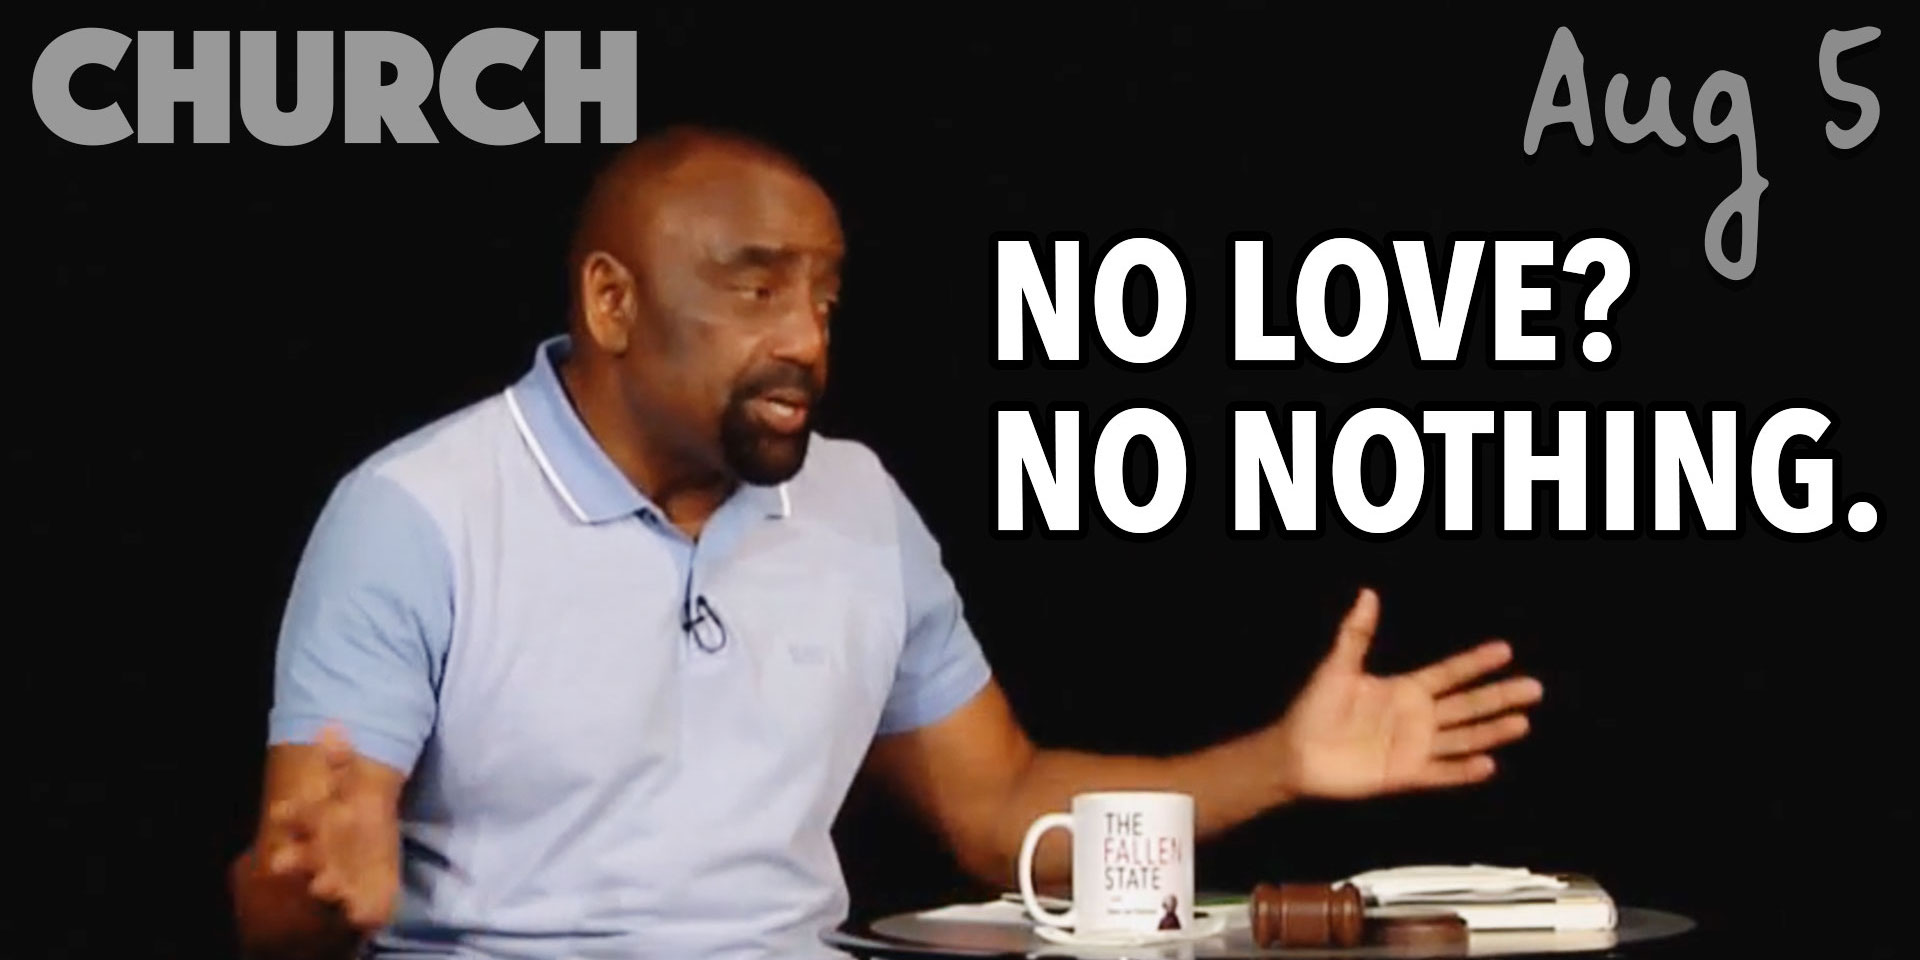 Church August 5: If You Don't Have Love, You Have Nothing